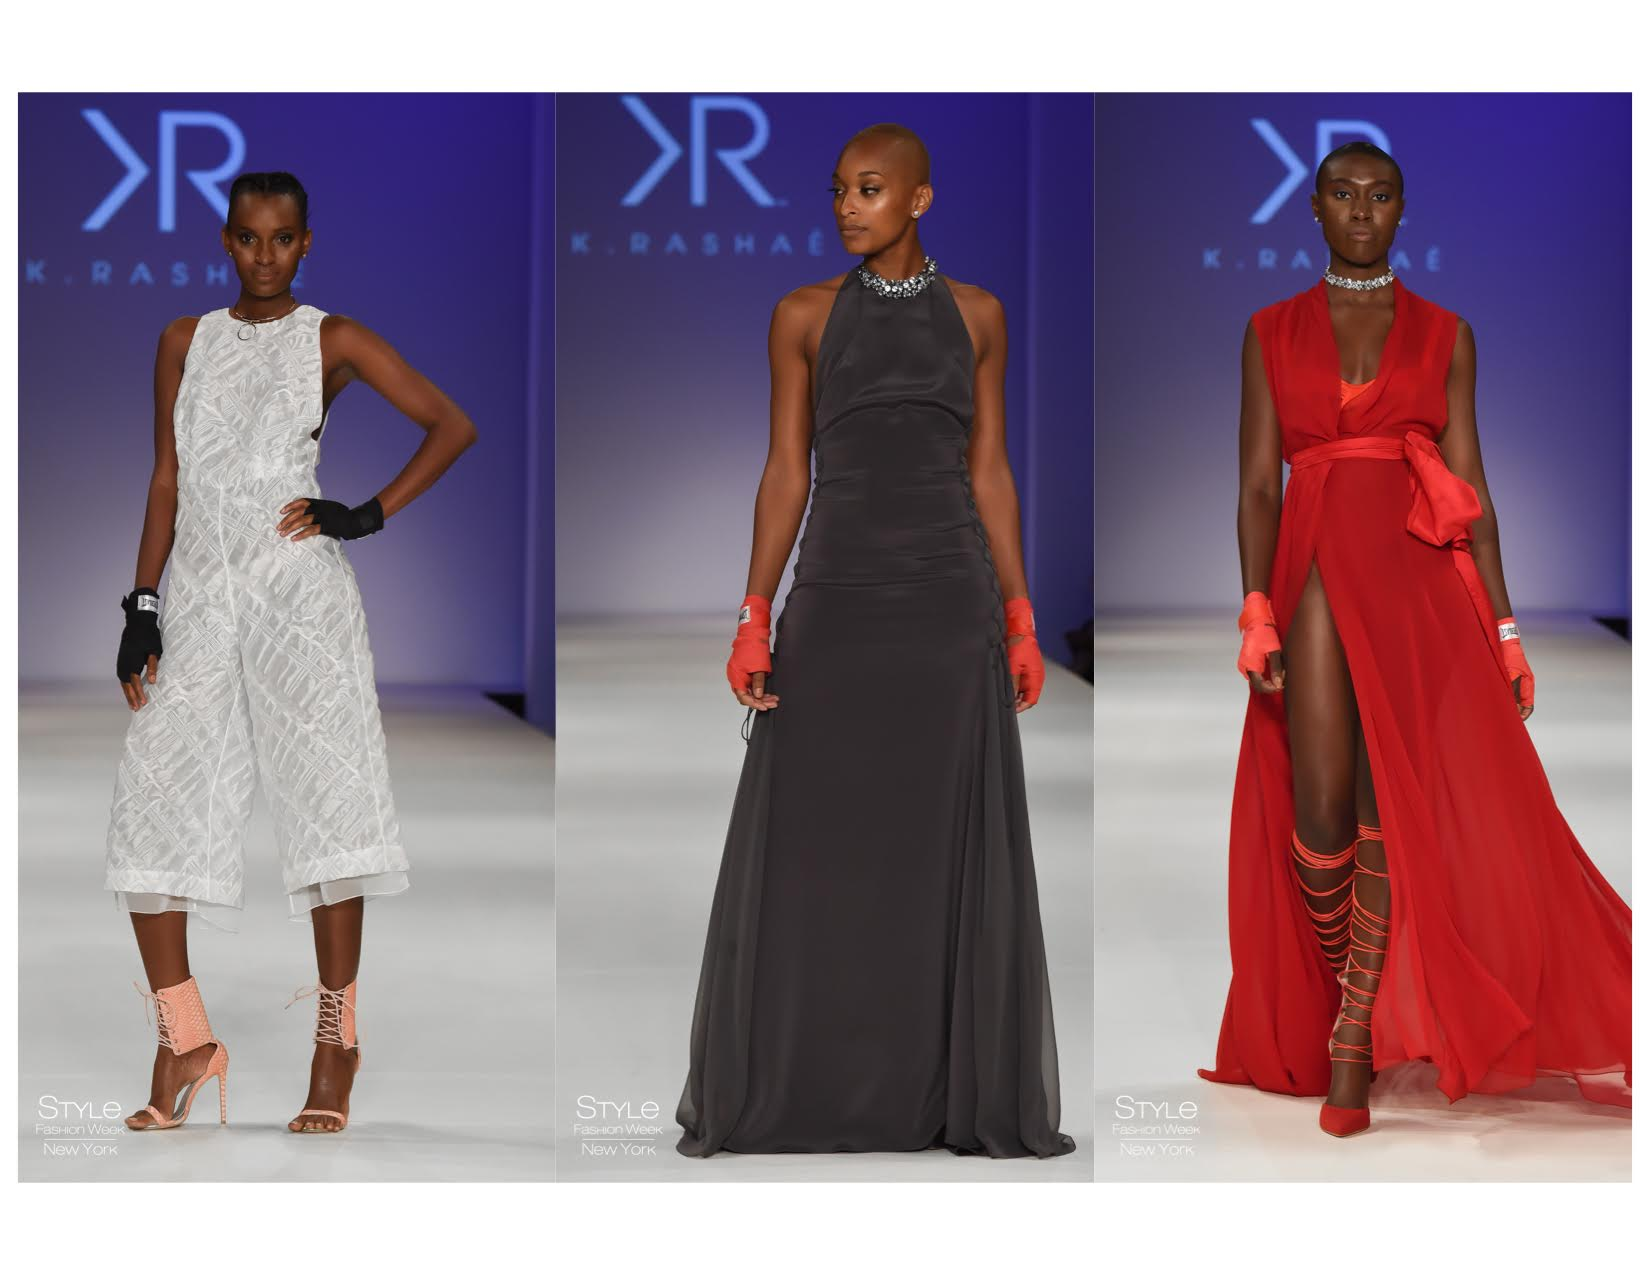 K Rashae Embo S Women Empowerment At New York Fashion